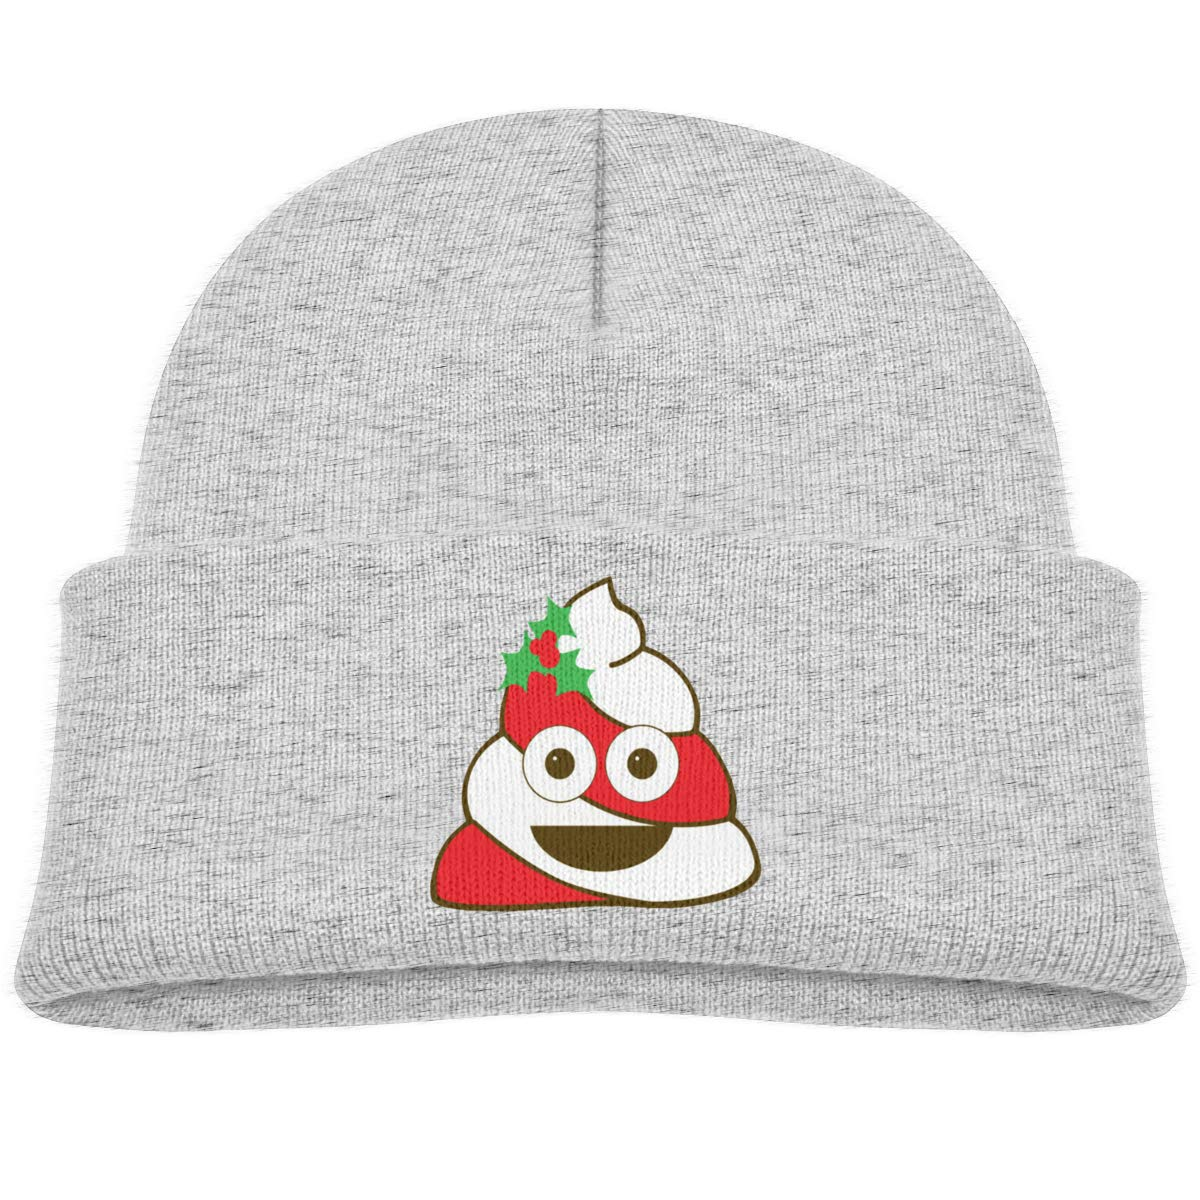 Hanfjj Kefdk Red and White Christmas Poop Infant Knit Hats Unisex Beanie Caps